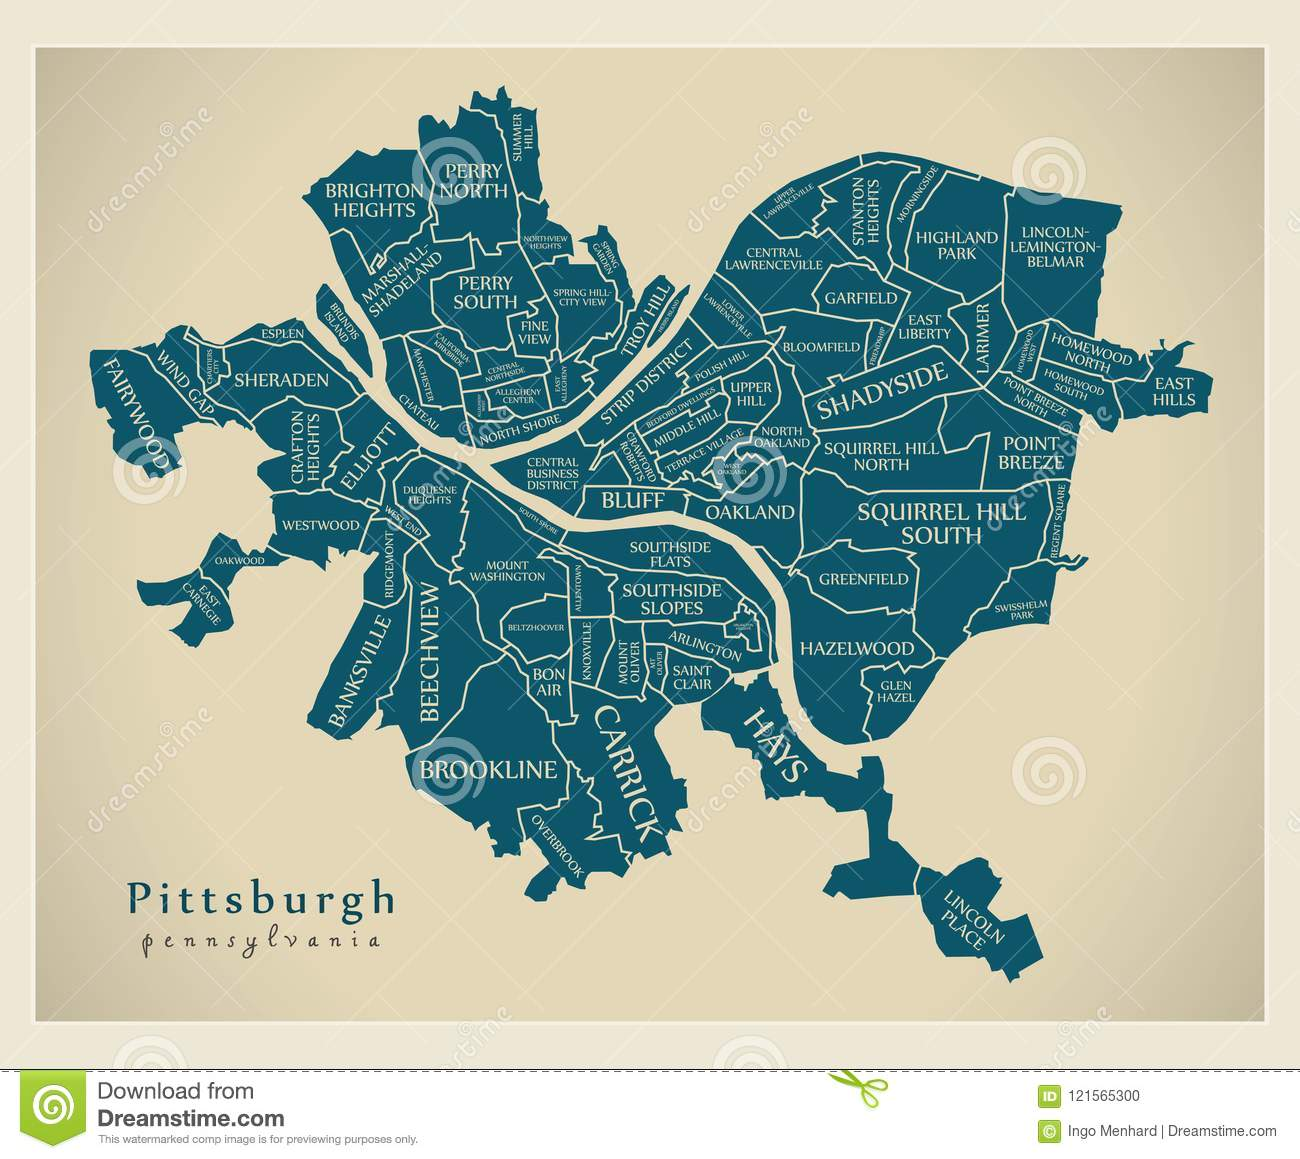 Pittsburgh On Map Of Usa.Modern City Map Pittsburgh Pennsylvania City Of The Usa With N